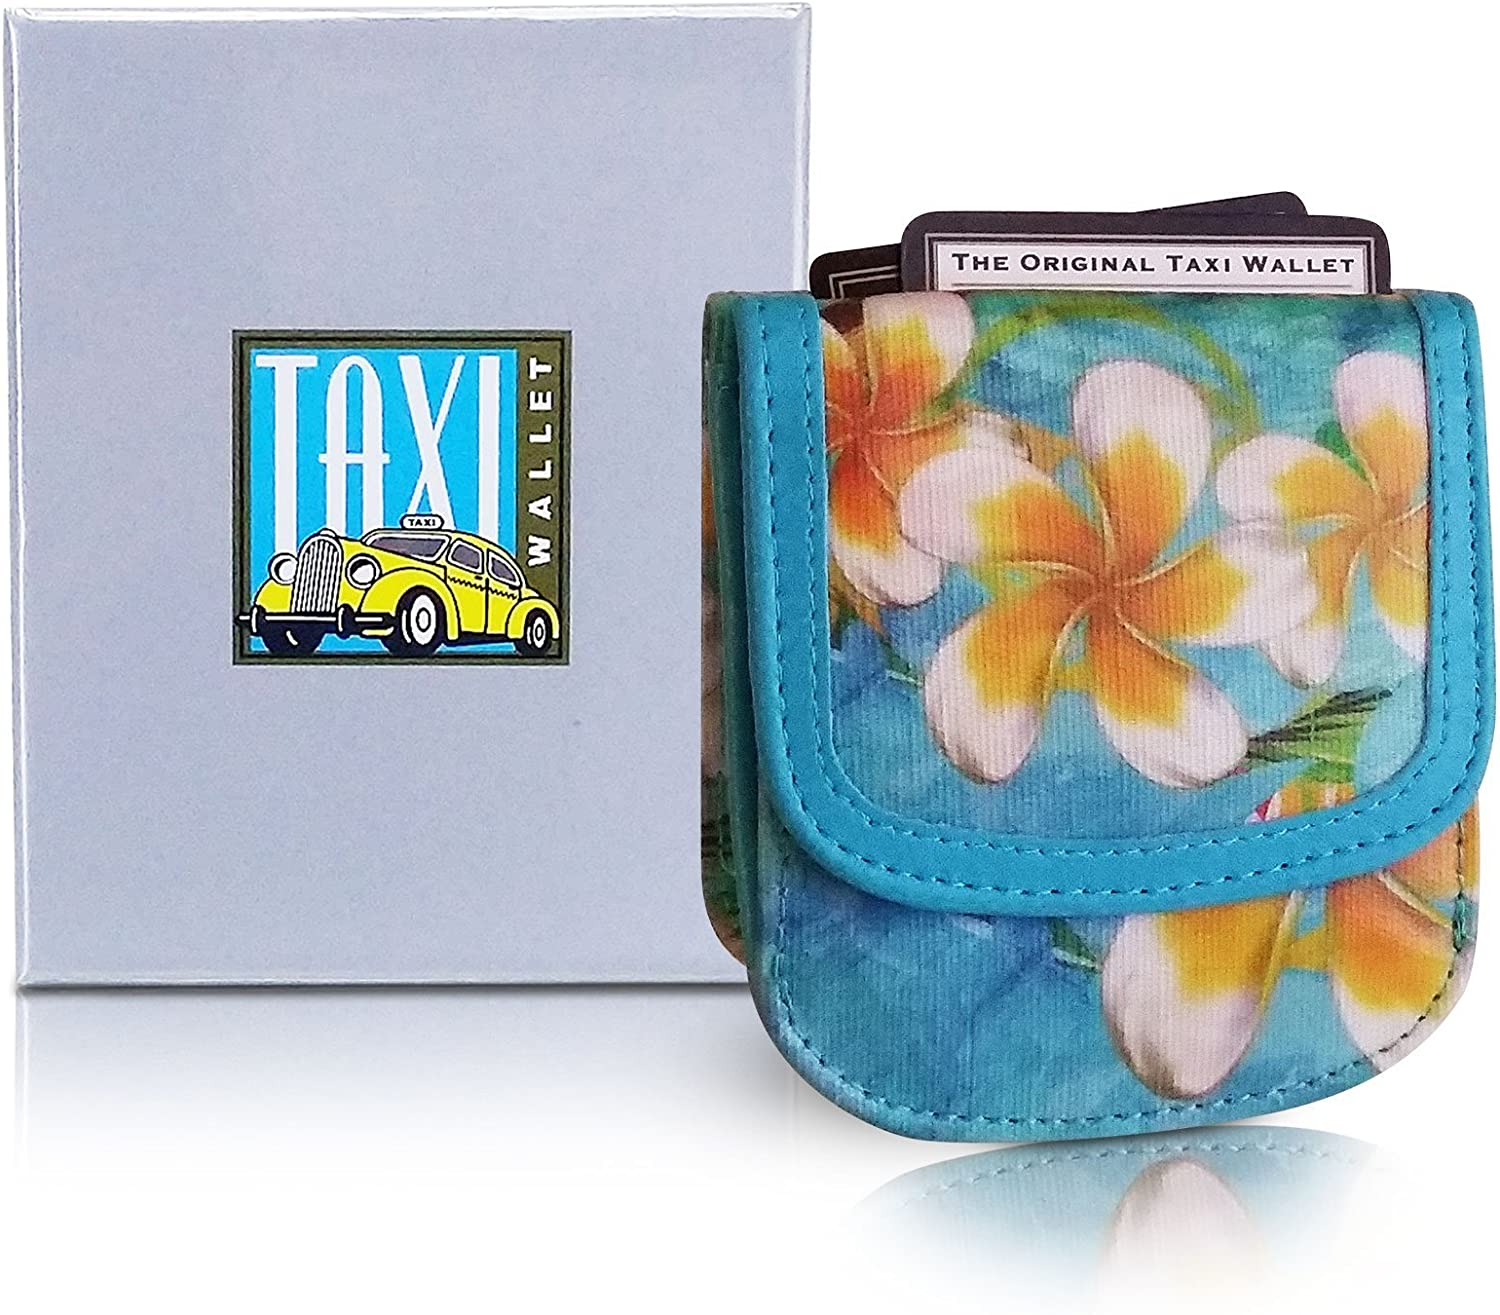 Taxi Wallet – Vegan Material, Plumeria – A Simple, Compact, Front Pocket, Folding Wallet, that holds Cards, Coins, Bills, ID – for Men & Women